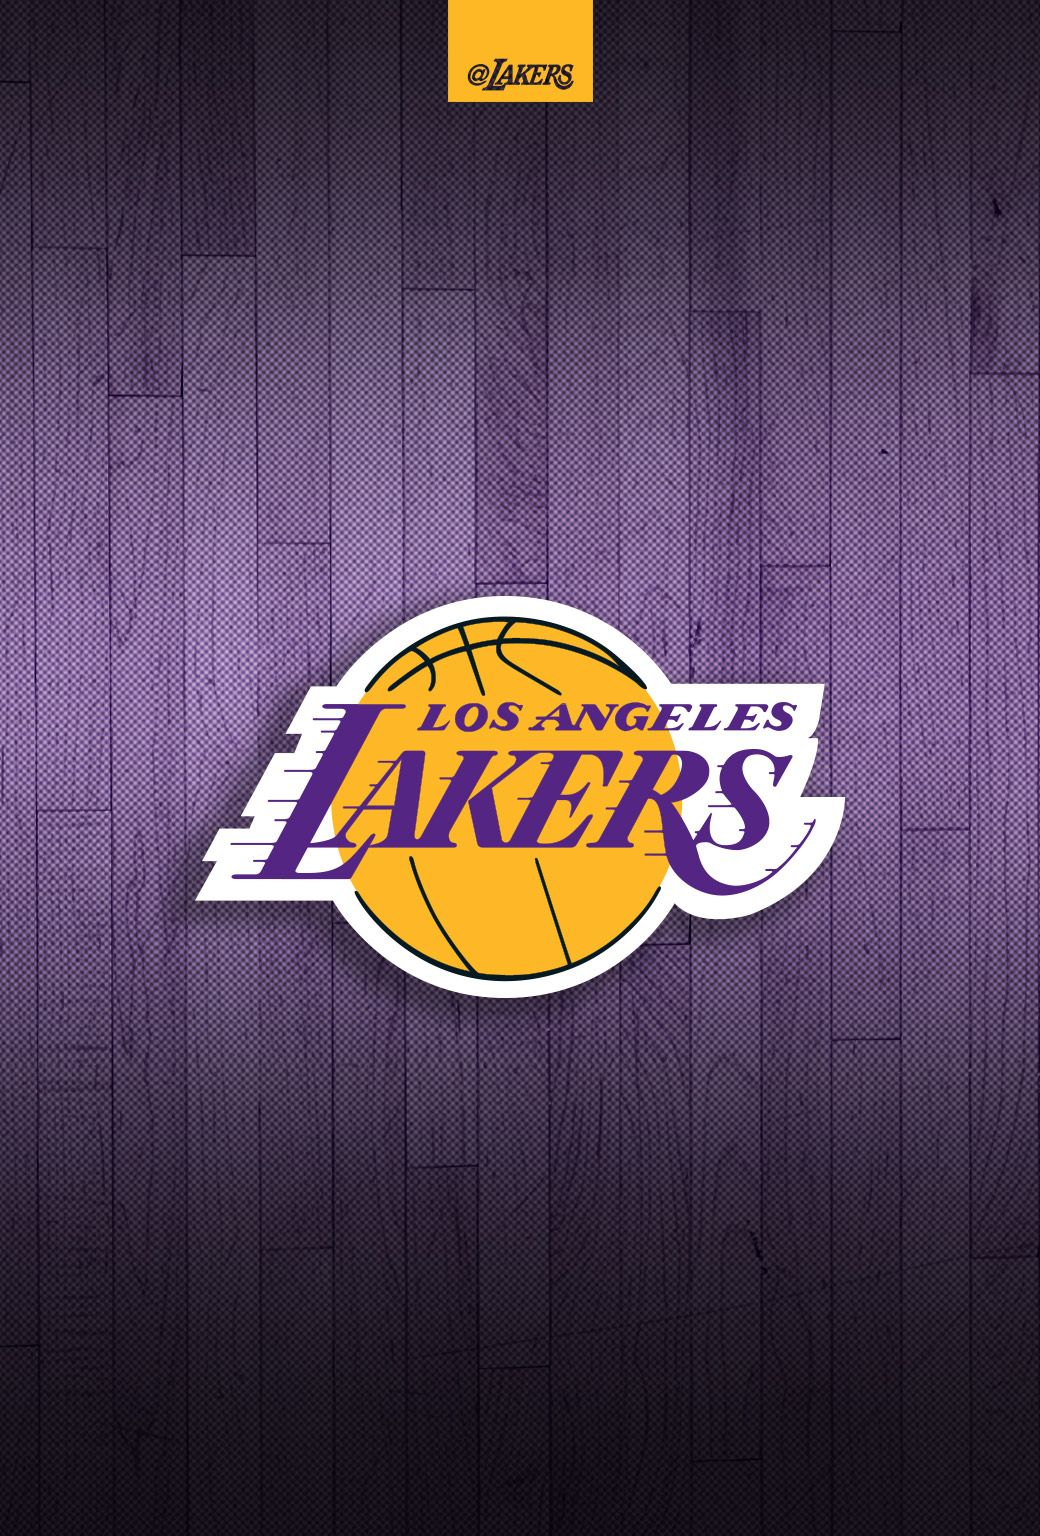 Lakers Wallpaper Android Live Wallpaper Hd